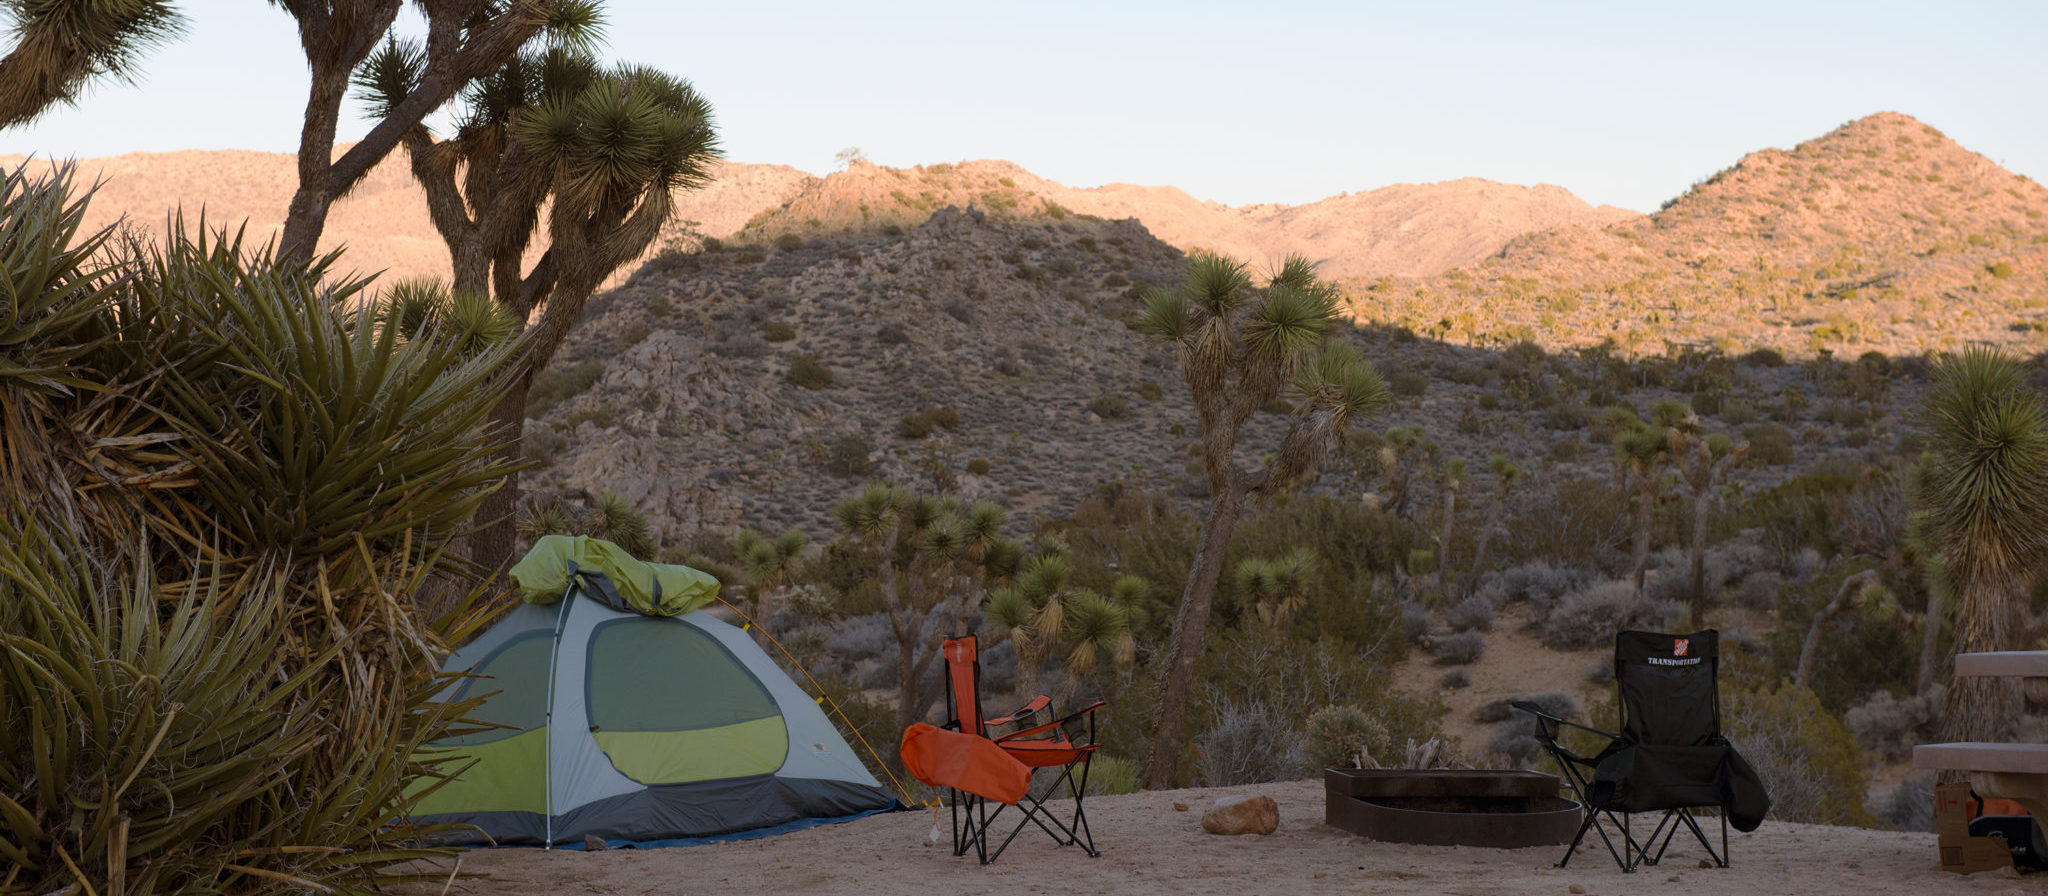 Black Rock Canyon Campground is located on the north side of the Joshua Tree National Park.